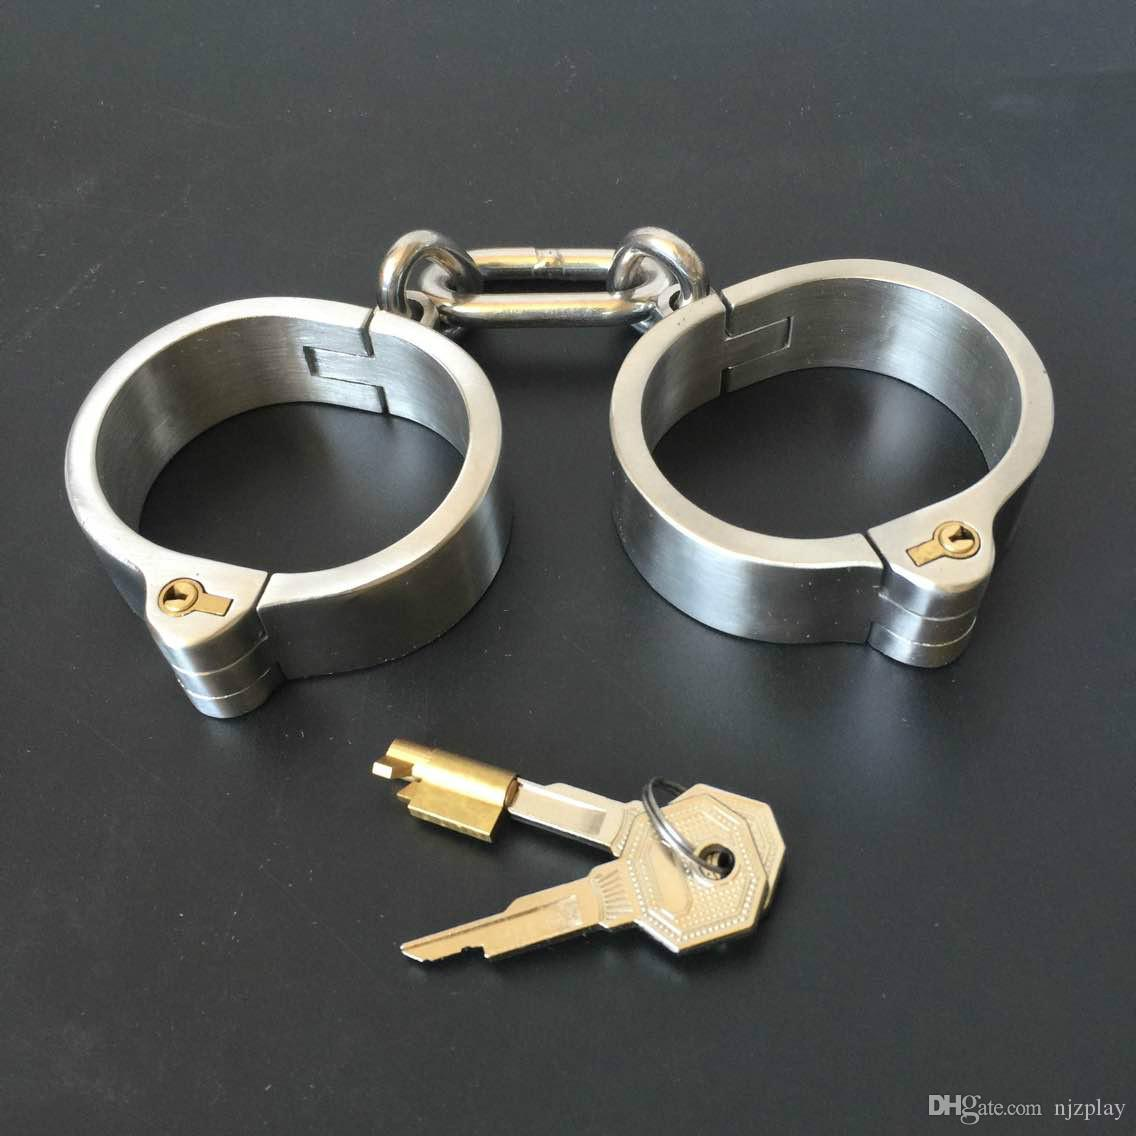 Unisex Stainless Steel Handcurffs Ankle Cuffs Collar Bondage Gear BDSM Toys And Sex Toys Fast Shipping